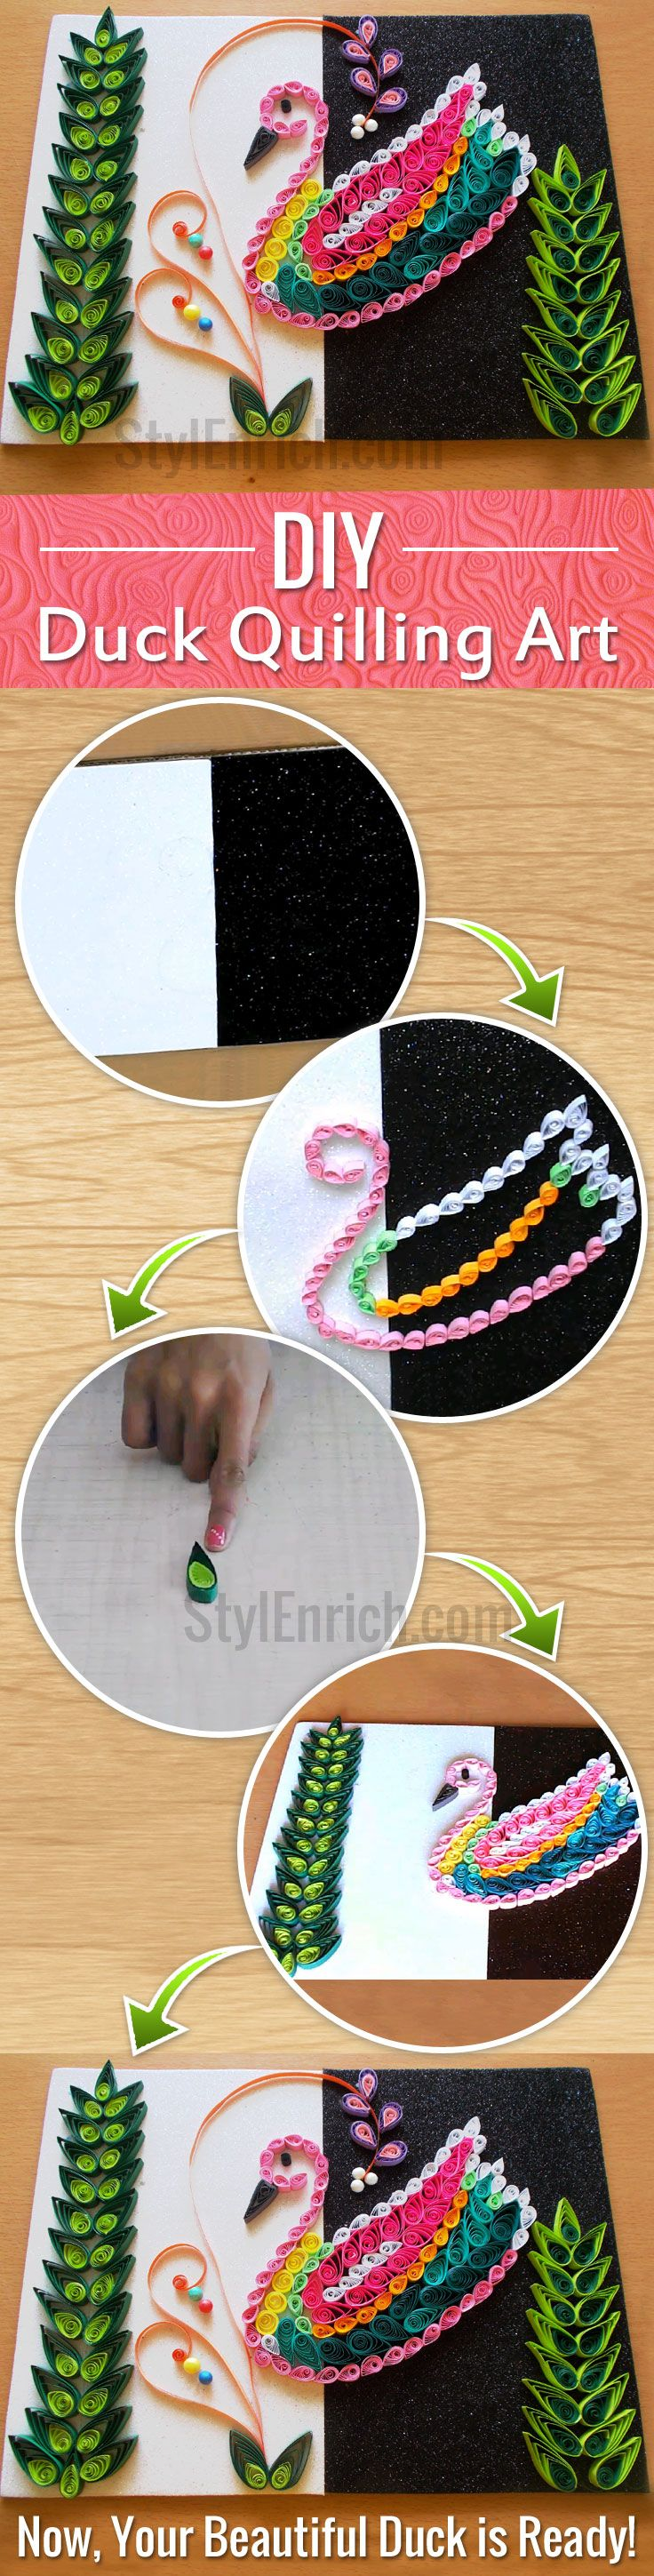 #Quilling Art is one such form of creating #DIYCrafts that can extensively be used for various purposes. Here, we have provided quilling tutorial on How to Make a Multicoloured Duck Using Quilling Art. Take a look on this Quilled Bird and explore your craft ideas to creating elegant Quilling Home Decor.